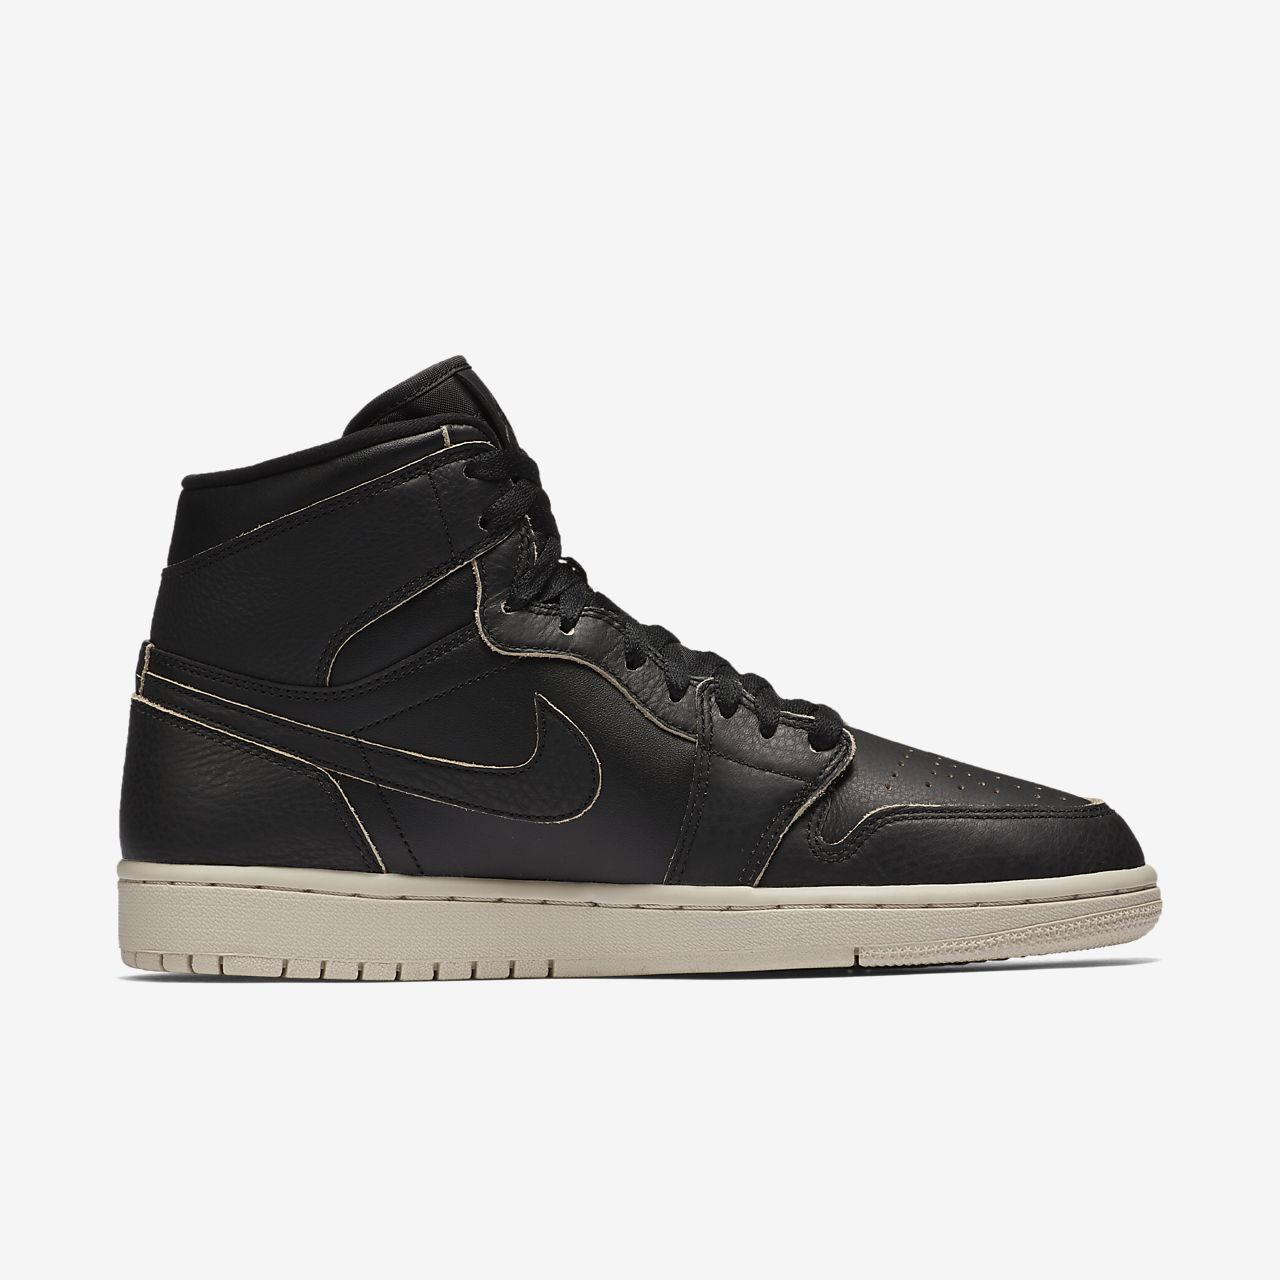 jordan 1 retro high nz